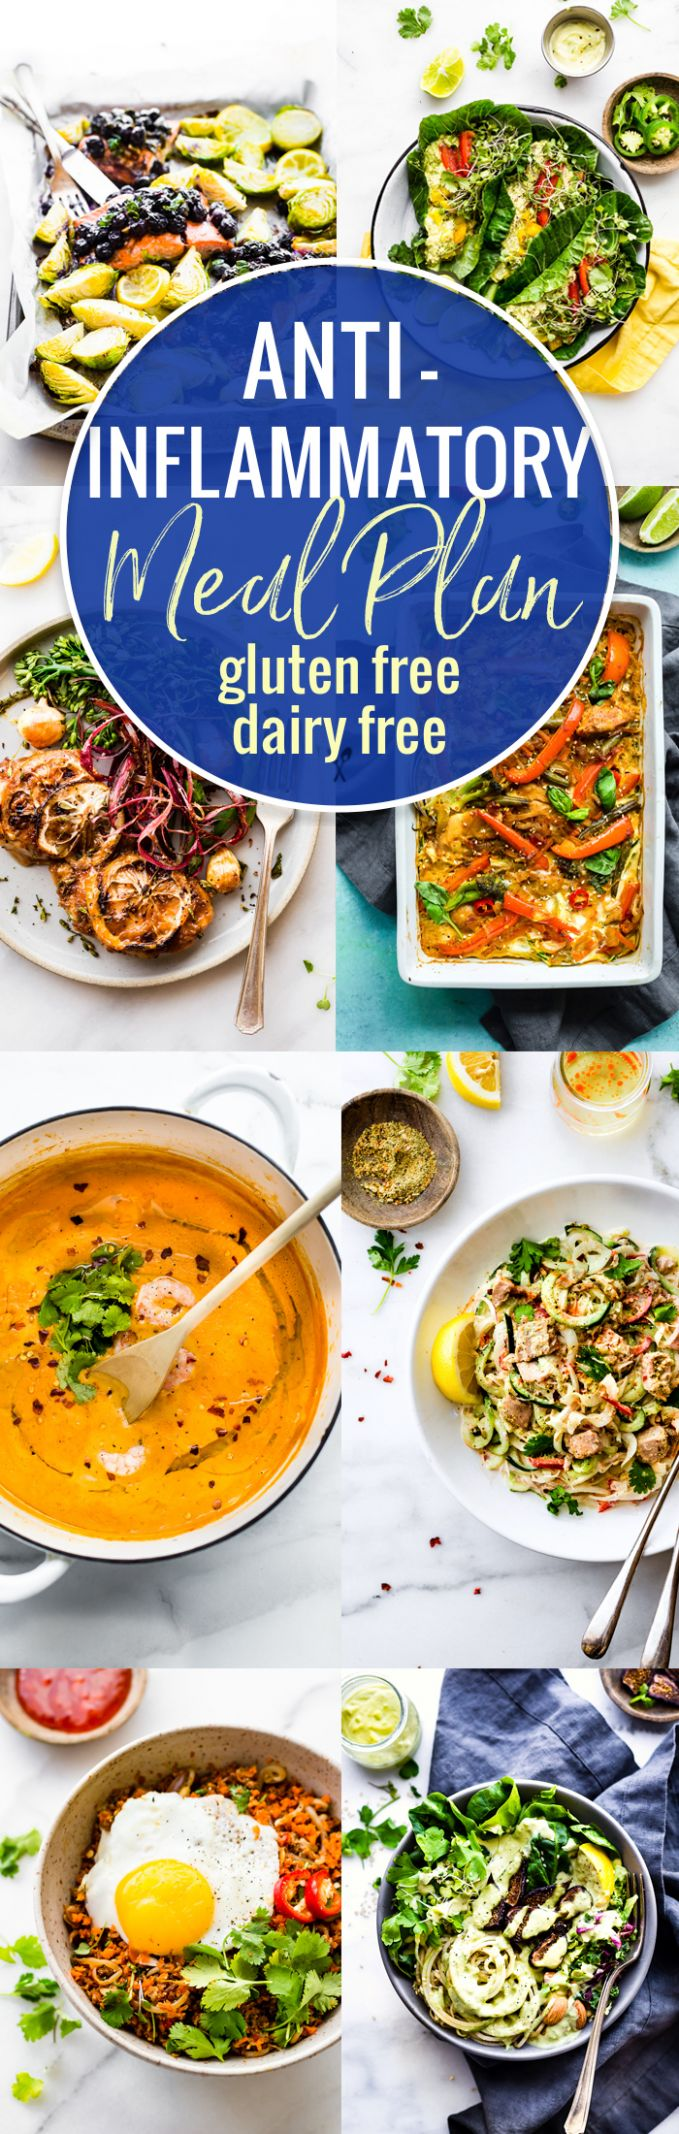 Anti-Inflammatory Meal Plan of Dairy-Free and Gluten-Free Recipes - Breakfast Recipes Gluten And Dairy Free